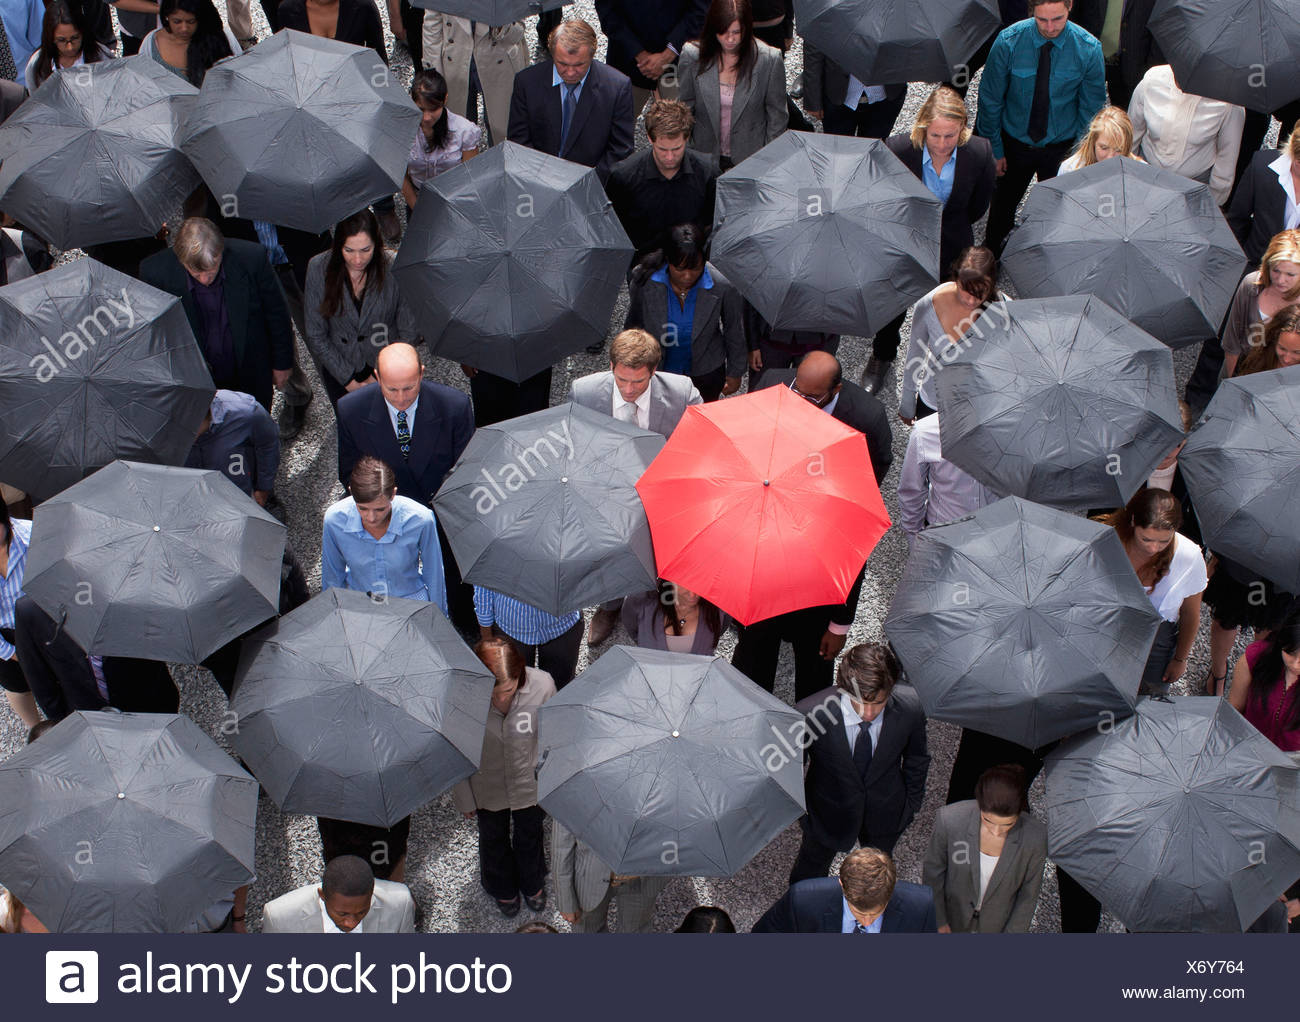 Red umbrella standing out in crowd of business people - Stock Image